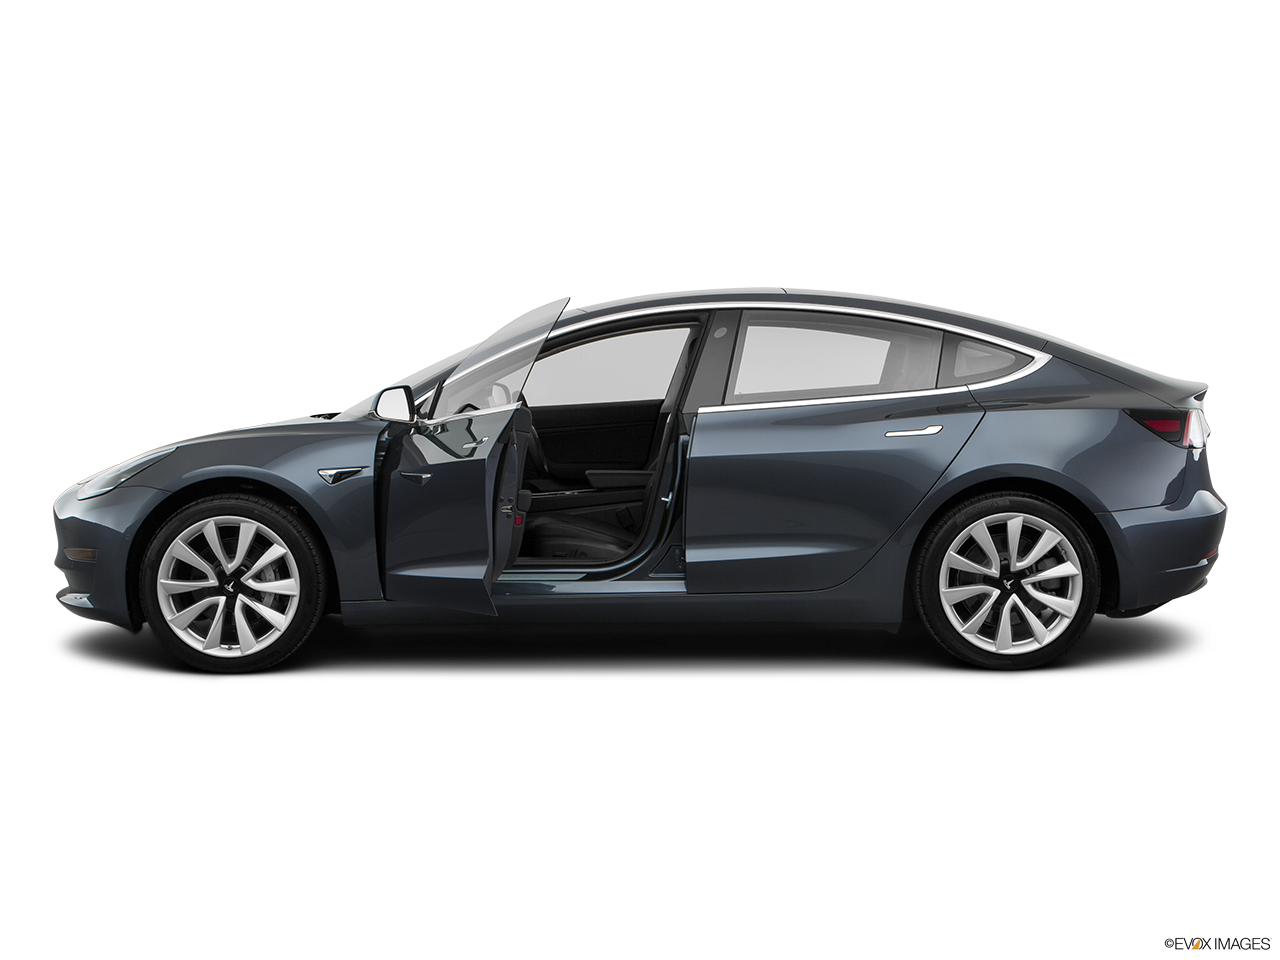 Side view of the Tesla Model 3